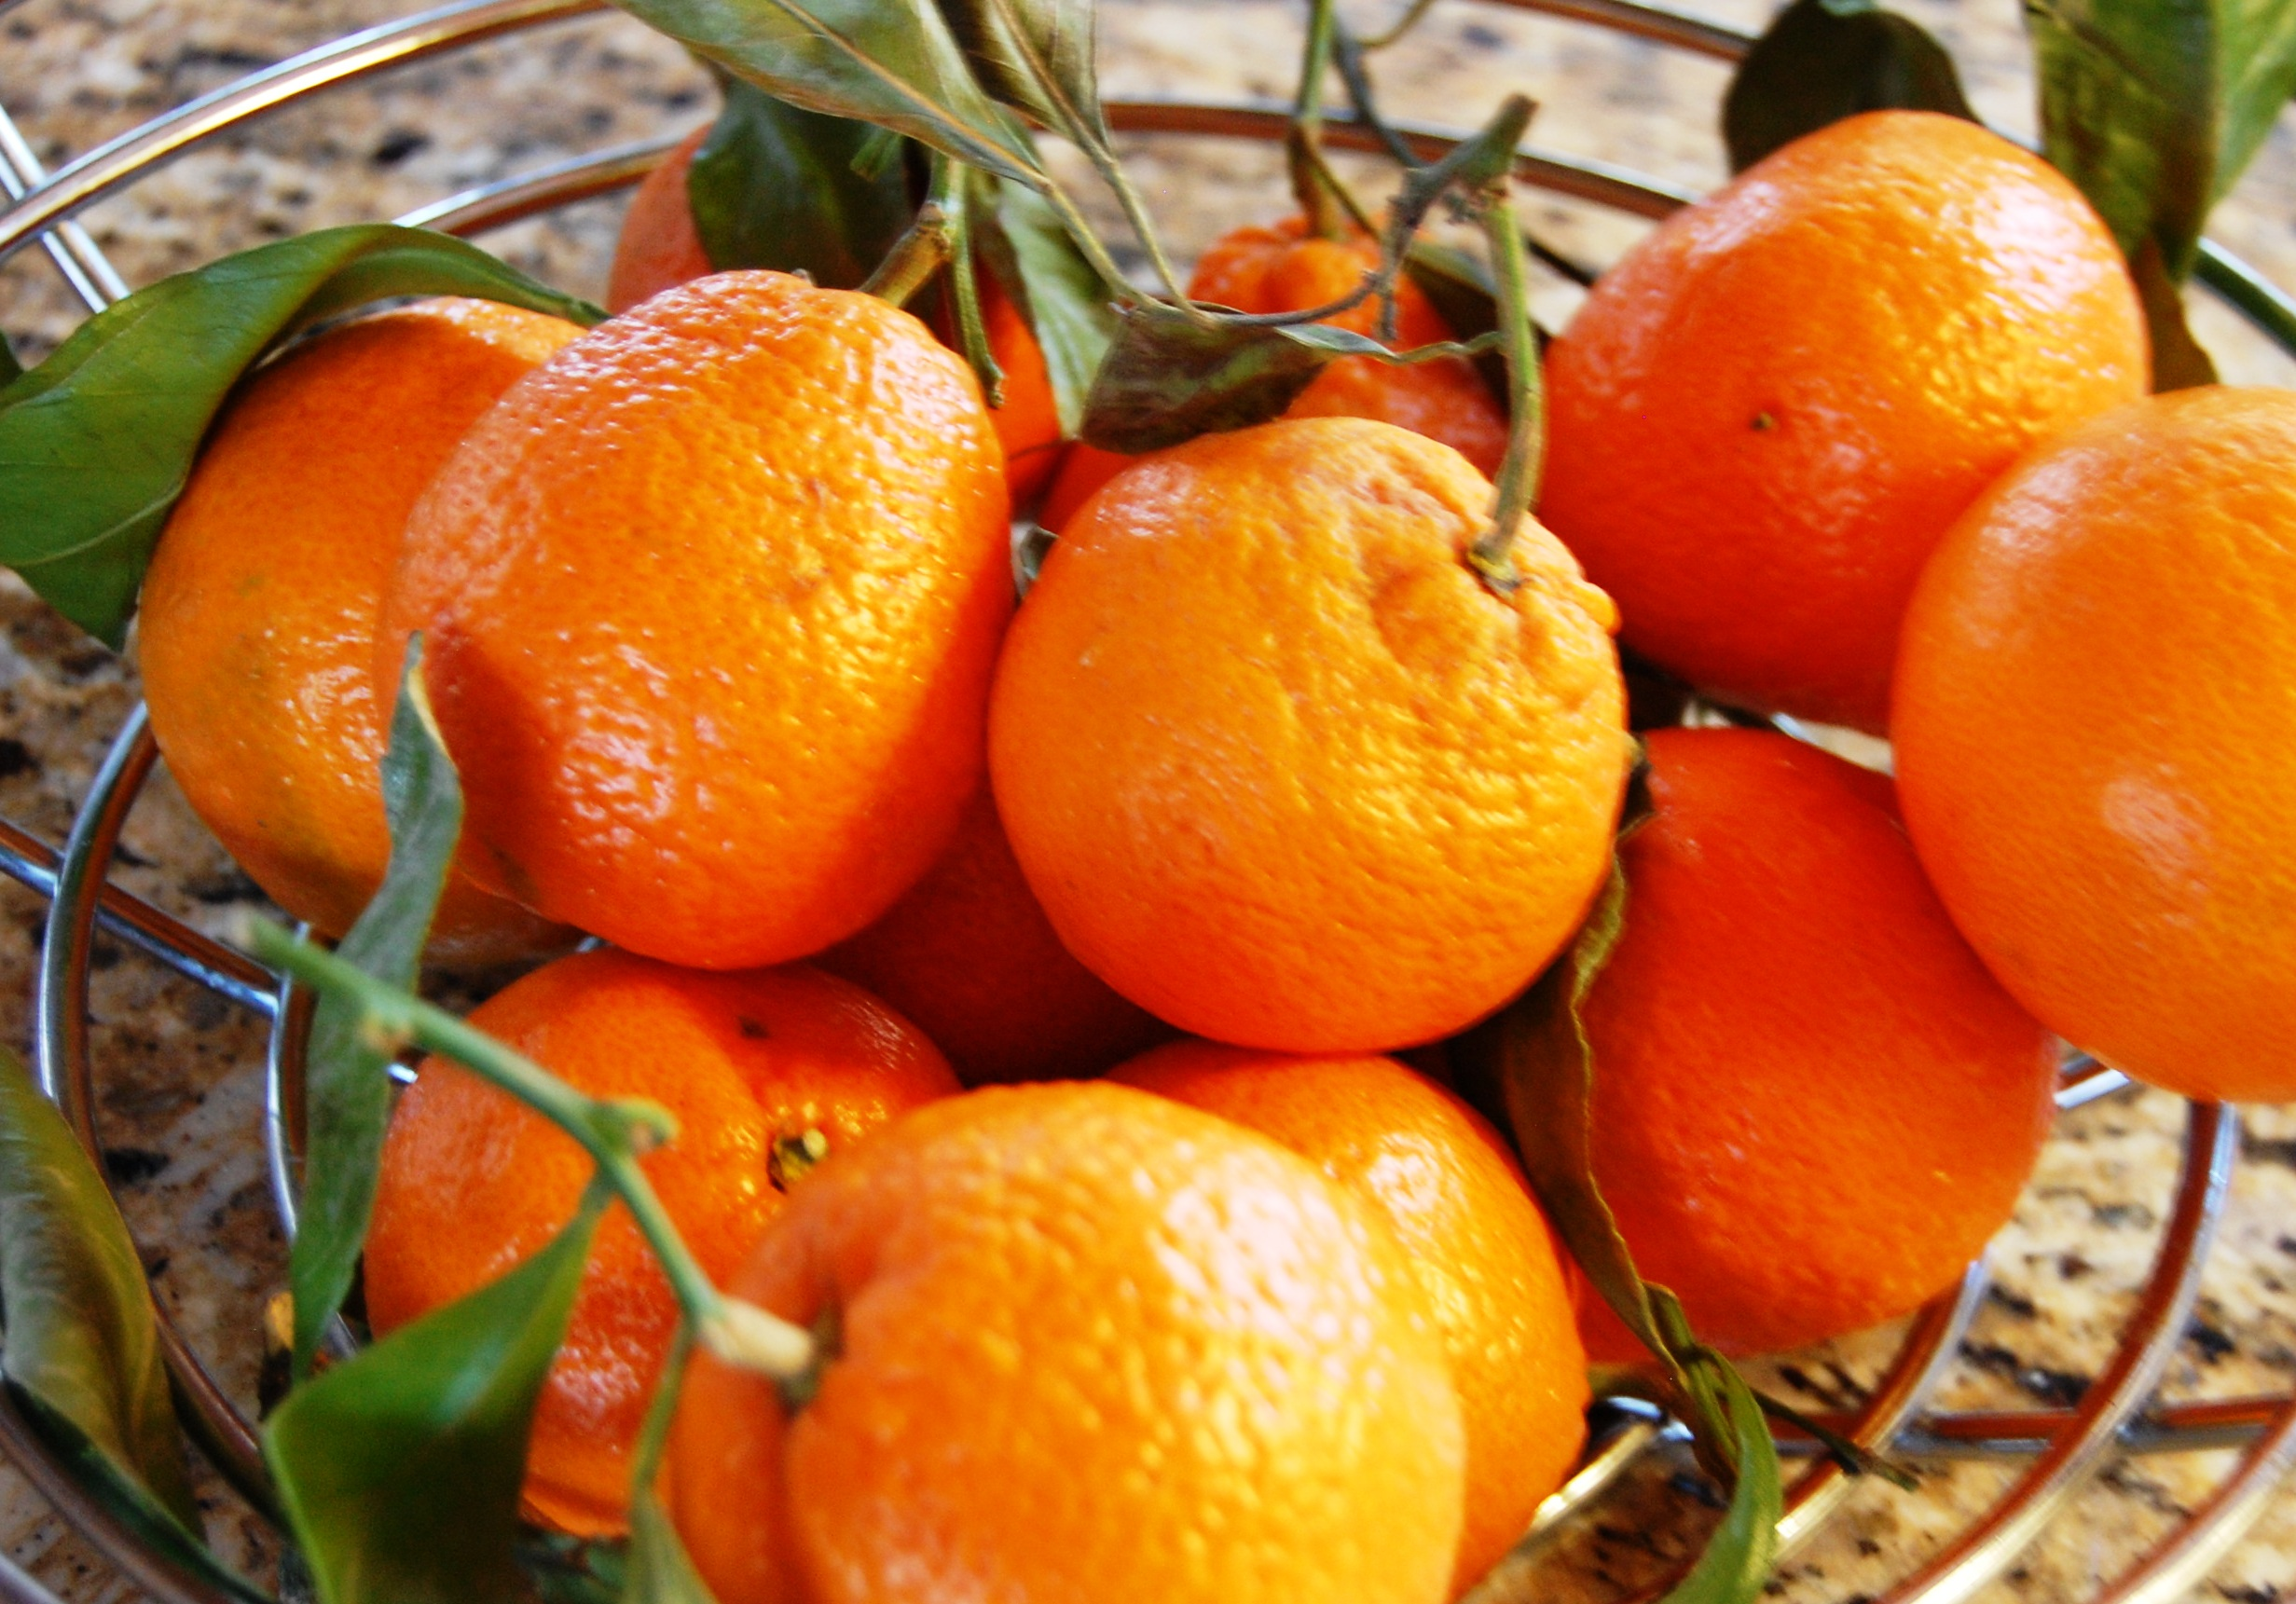 Why is it worth eating mandarins?